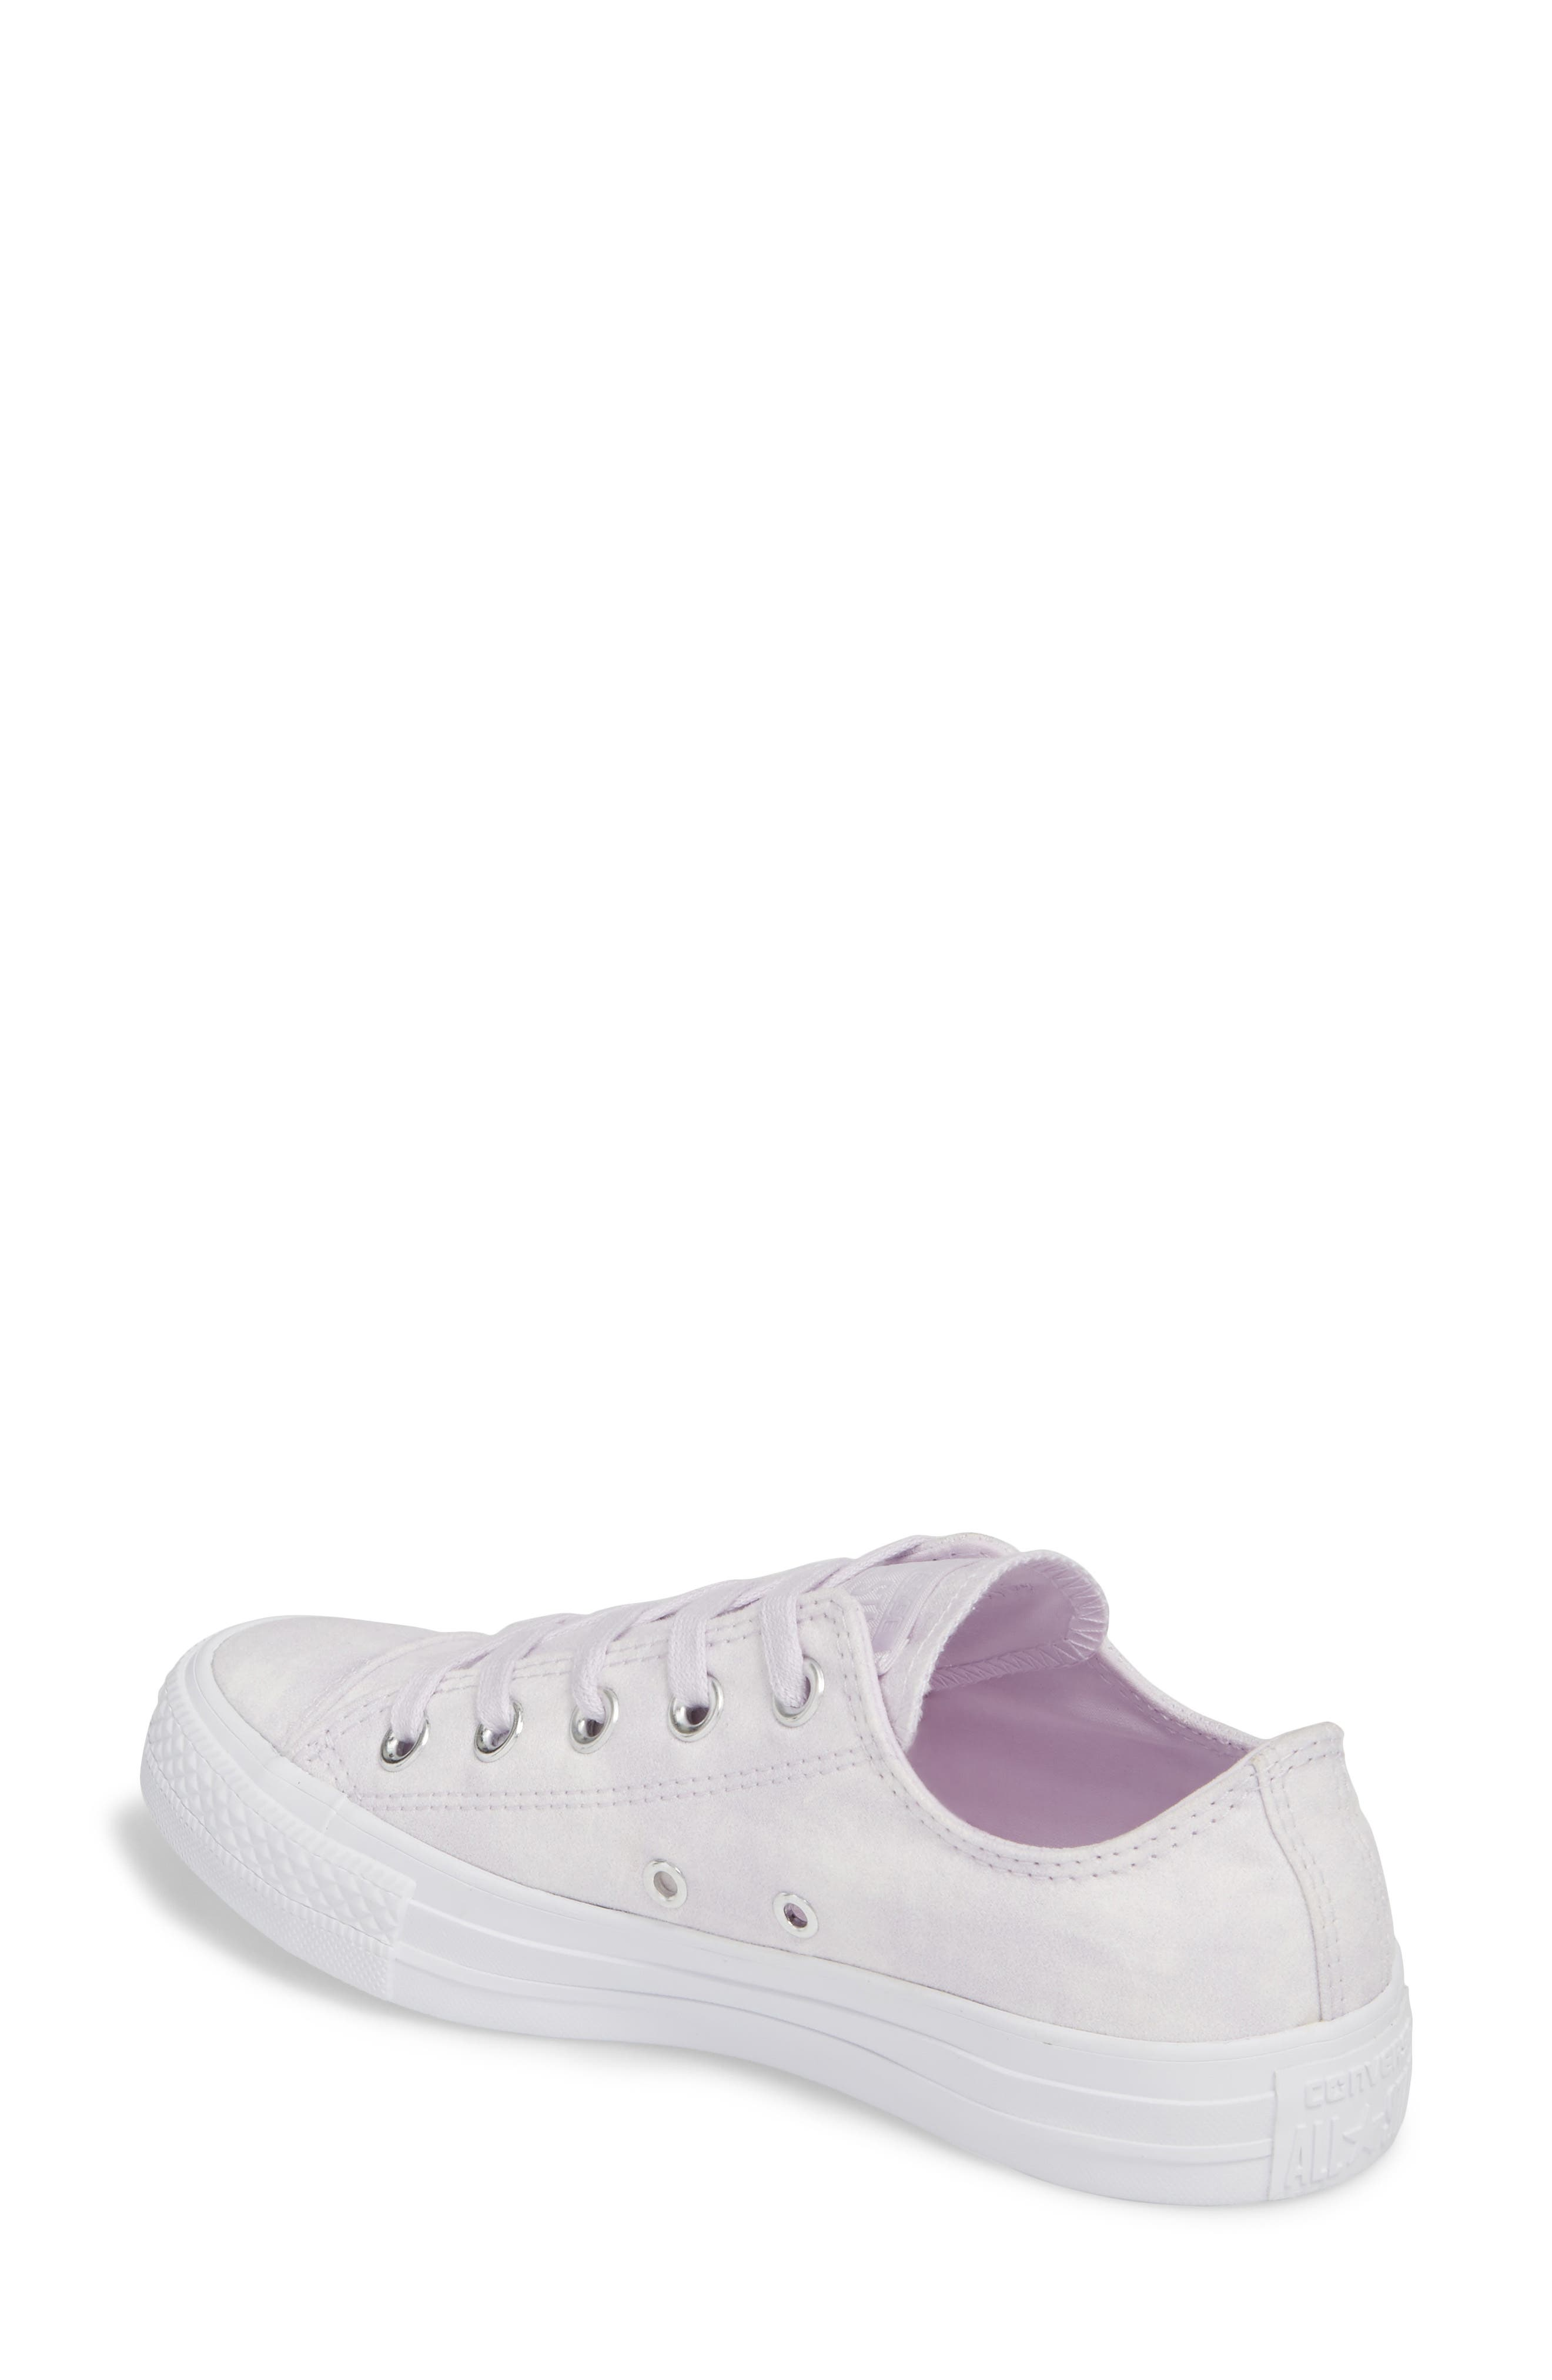 Chuck Taylor<sup>®</sup> All Star<sup>®</sup> Peached Low Top Sneaker,                             Alternate thumbnail 4, color,